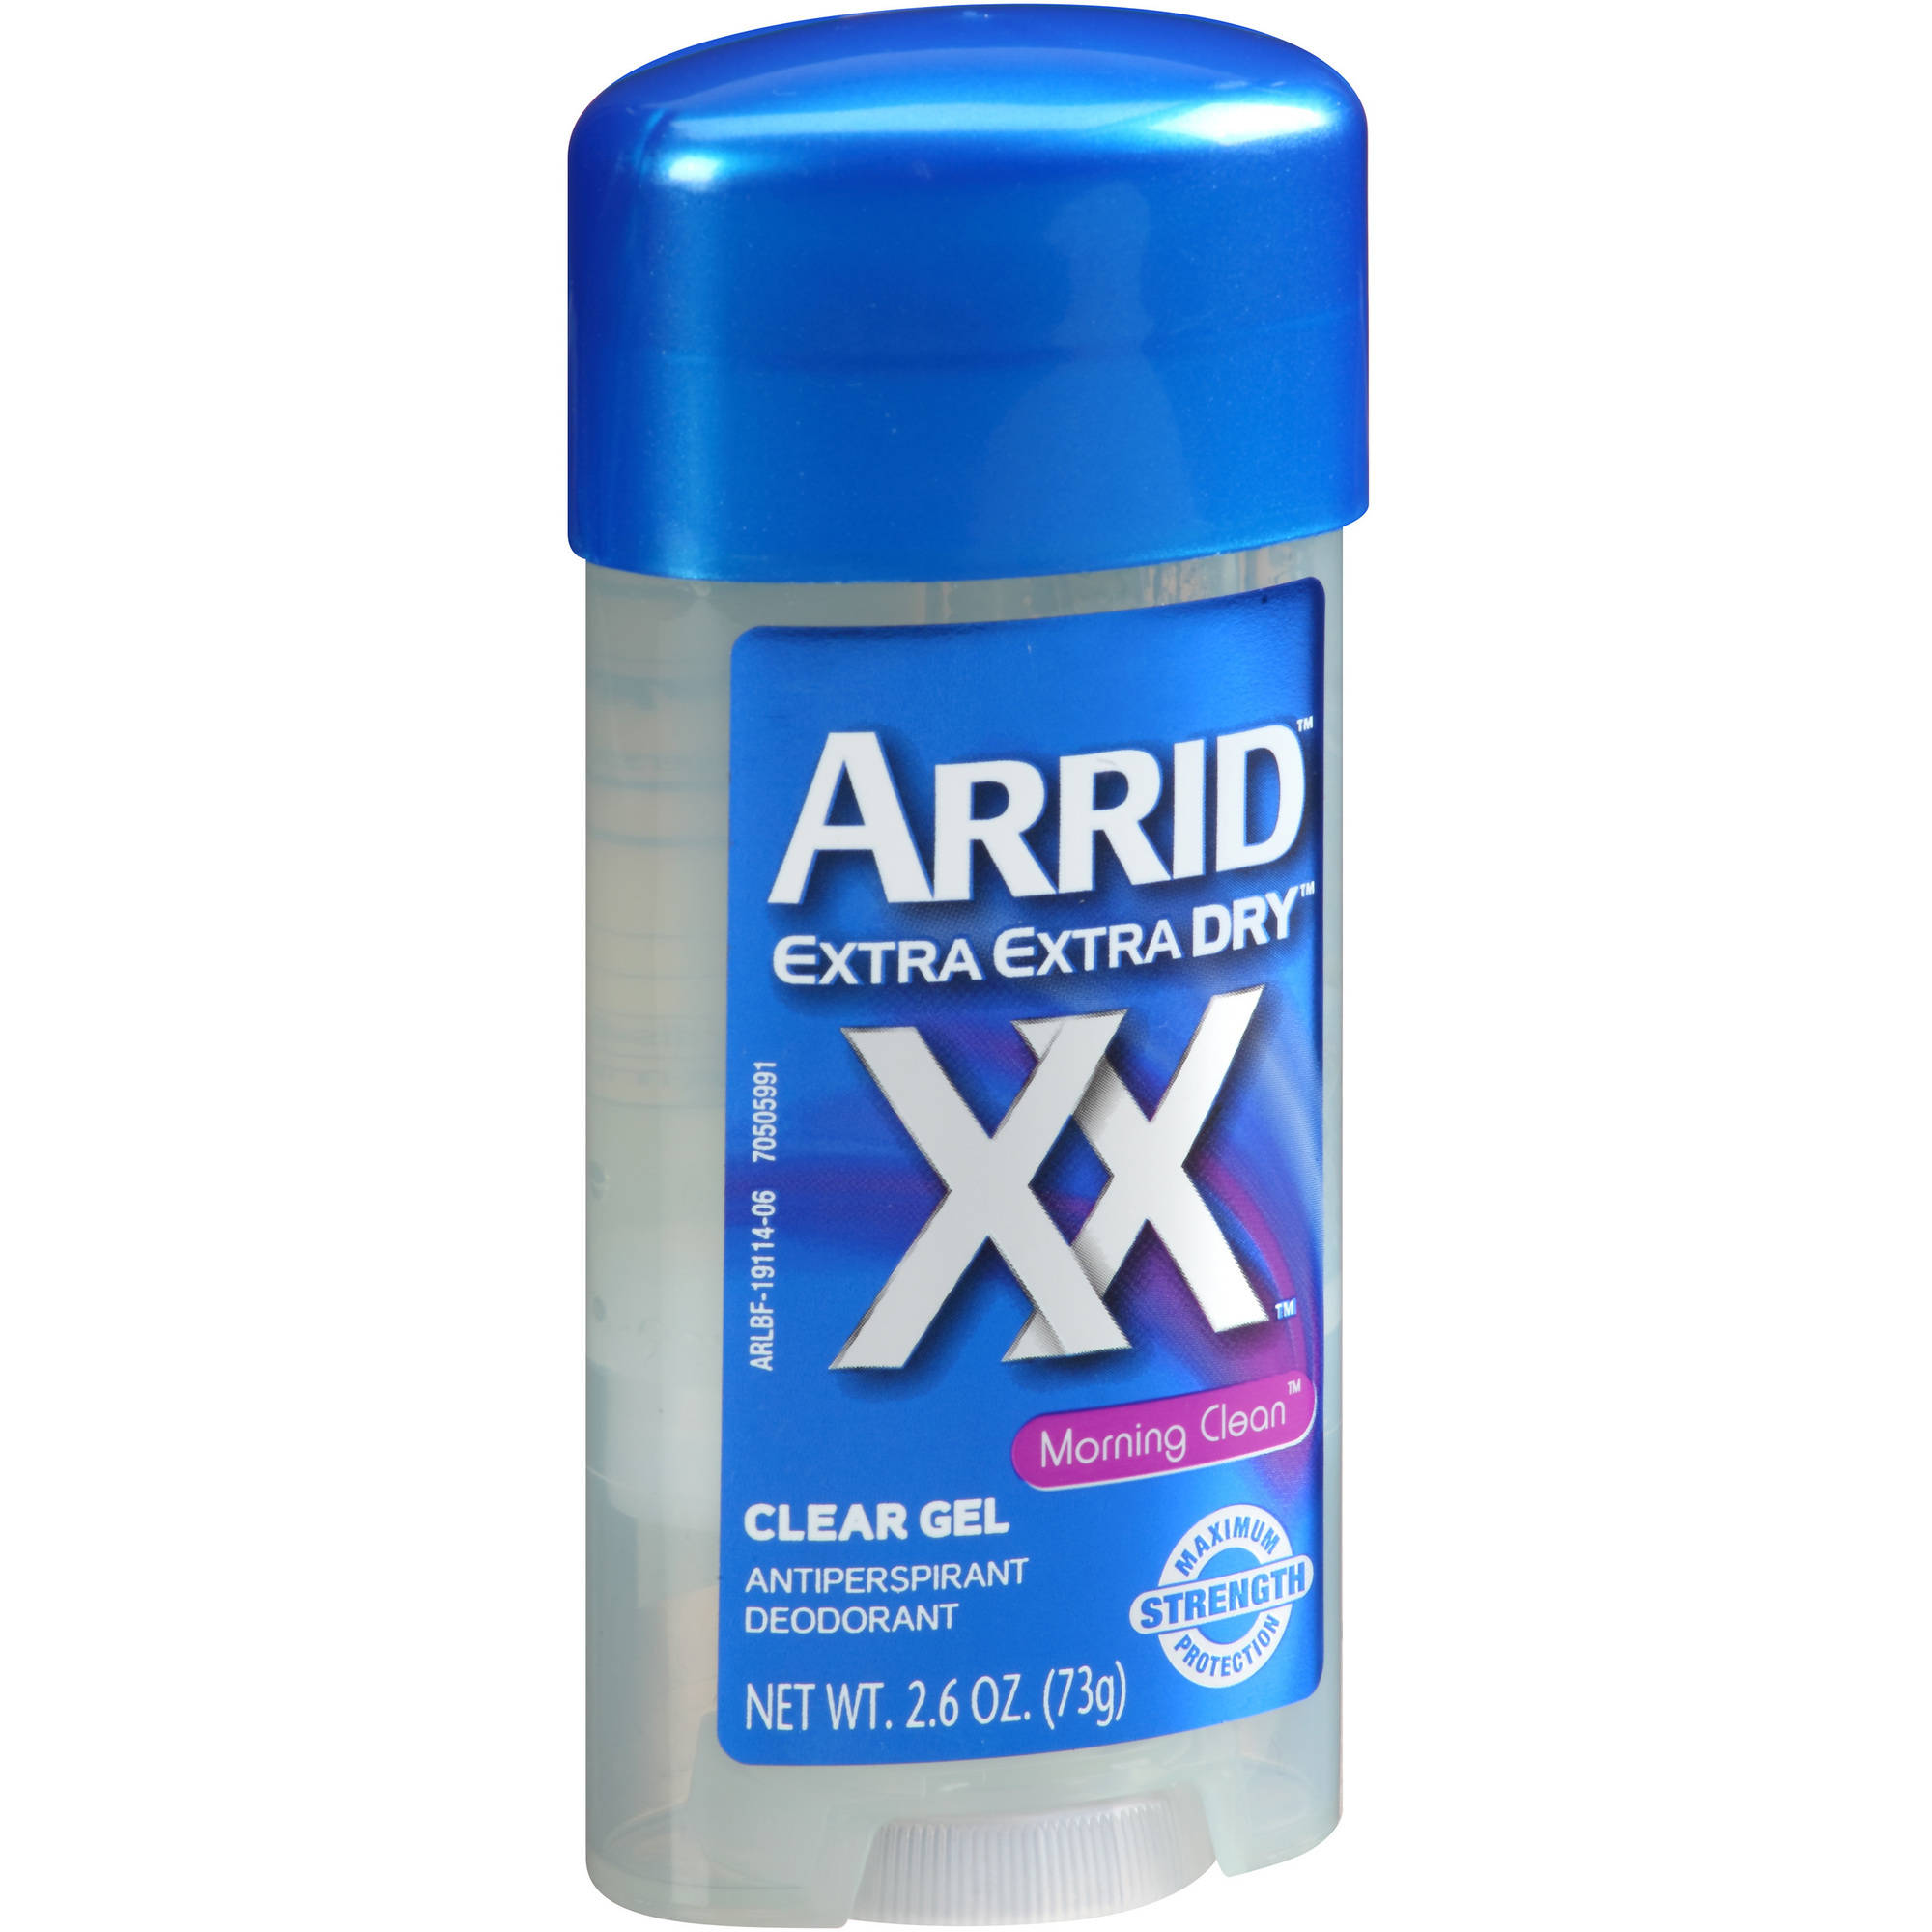 Arrid XX Extra Extra Dry Morning Clean Clear Gel Antiperspirant Deodorant, 2.6 oz